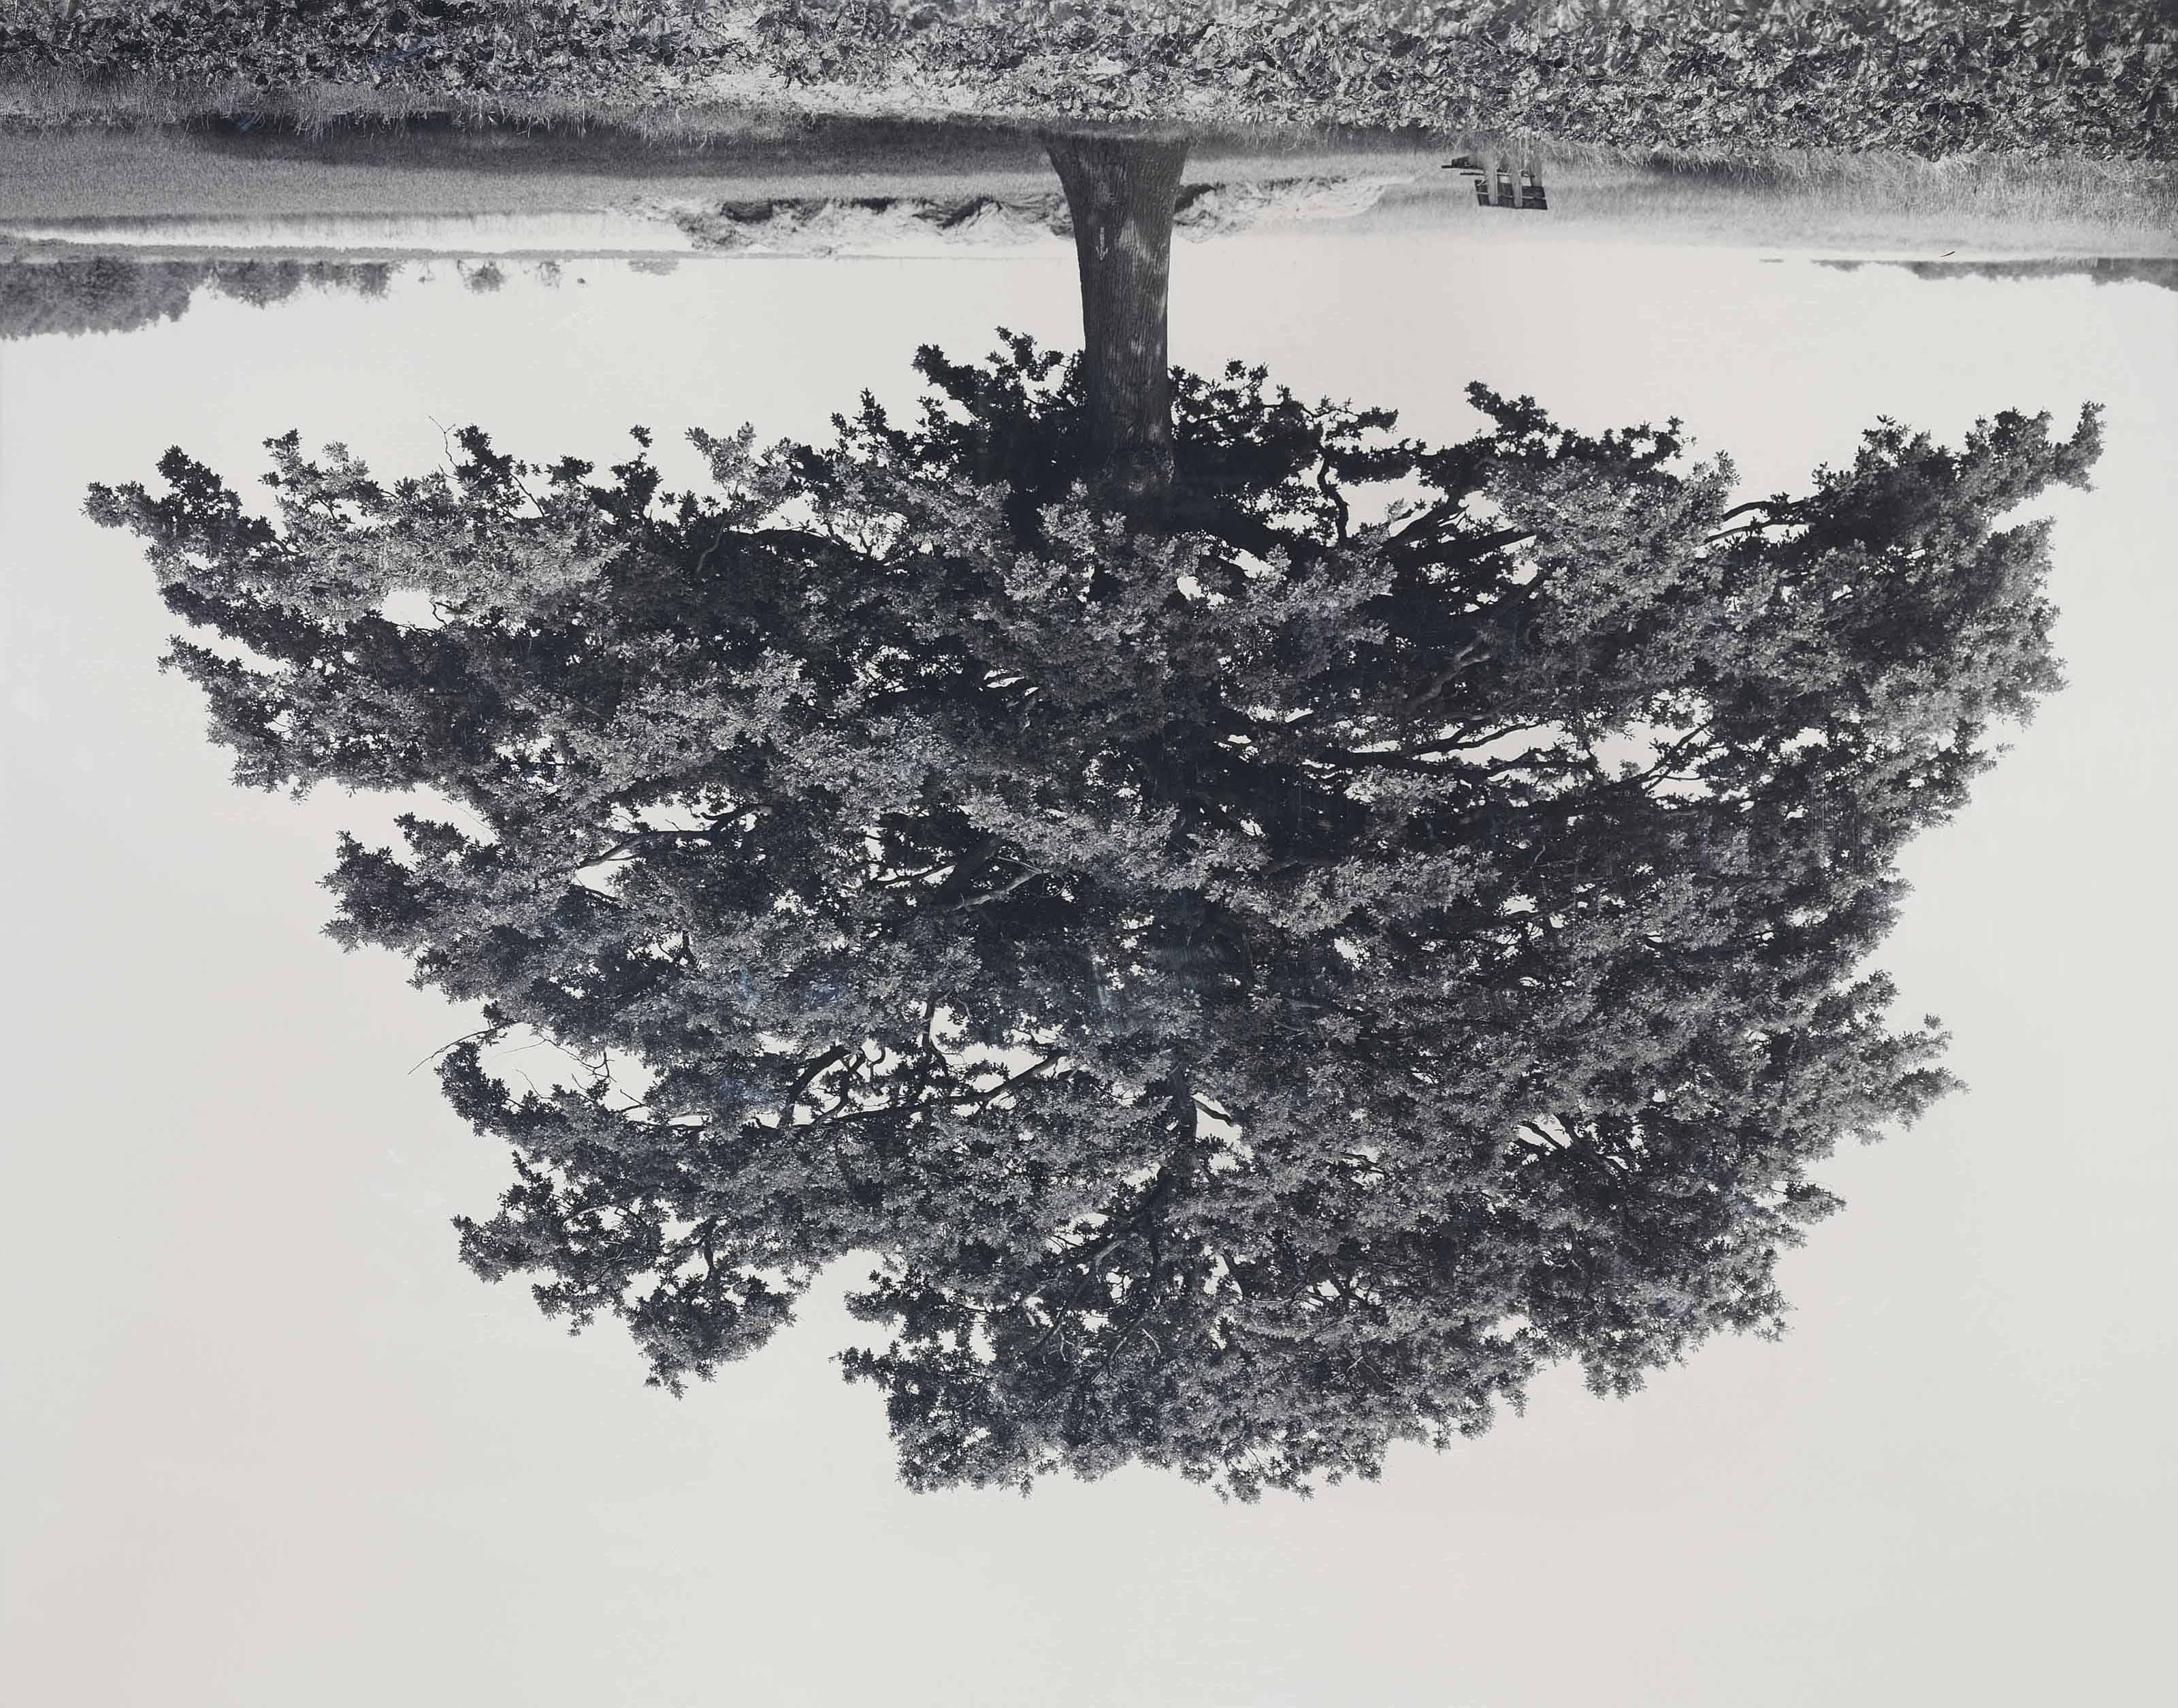 Oak, Kaggevinne (from the series Flanders Trees)